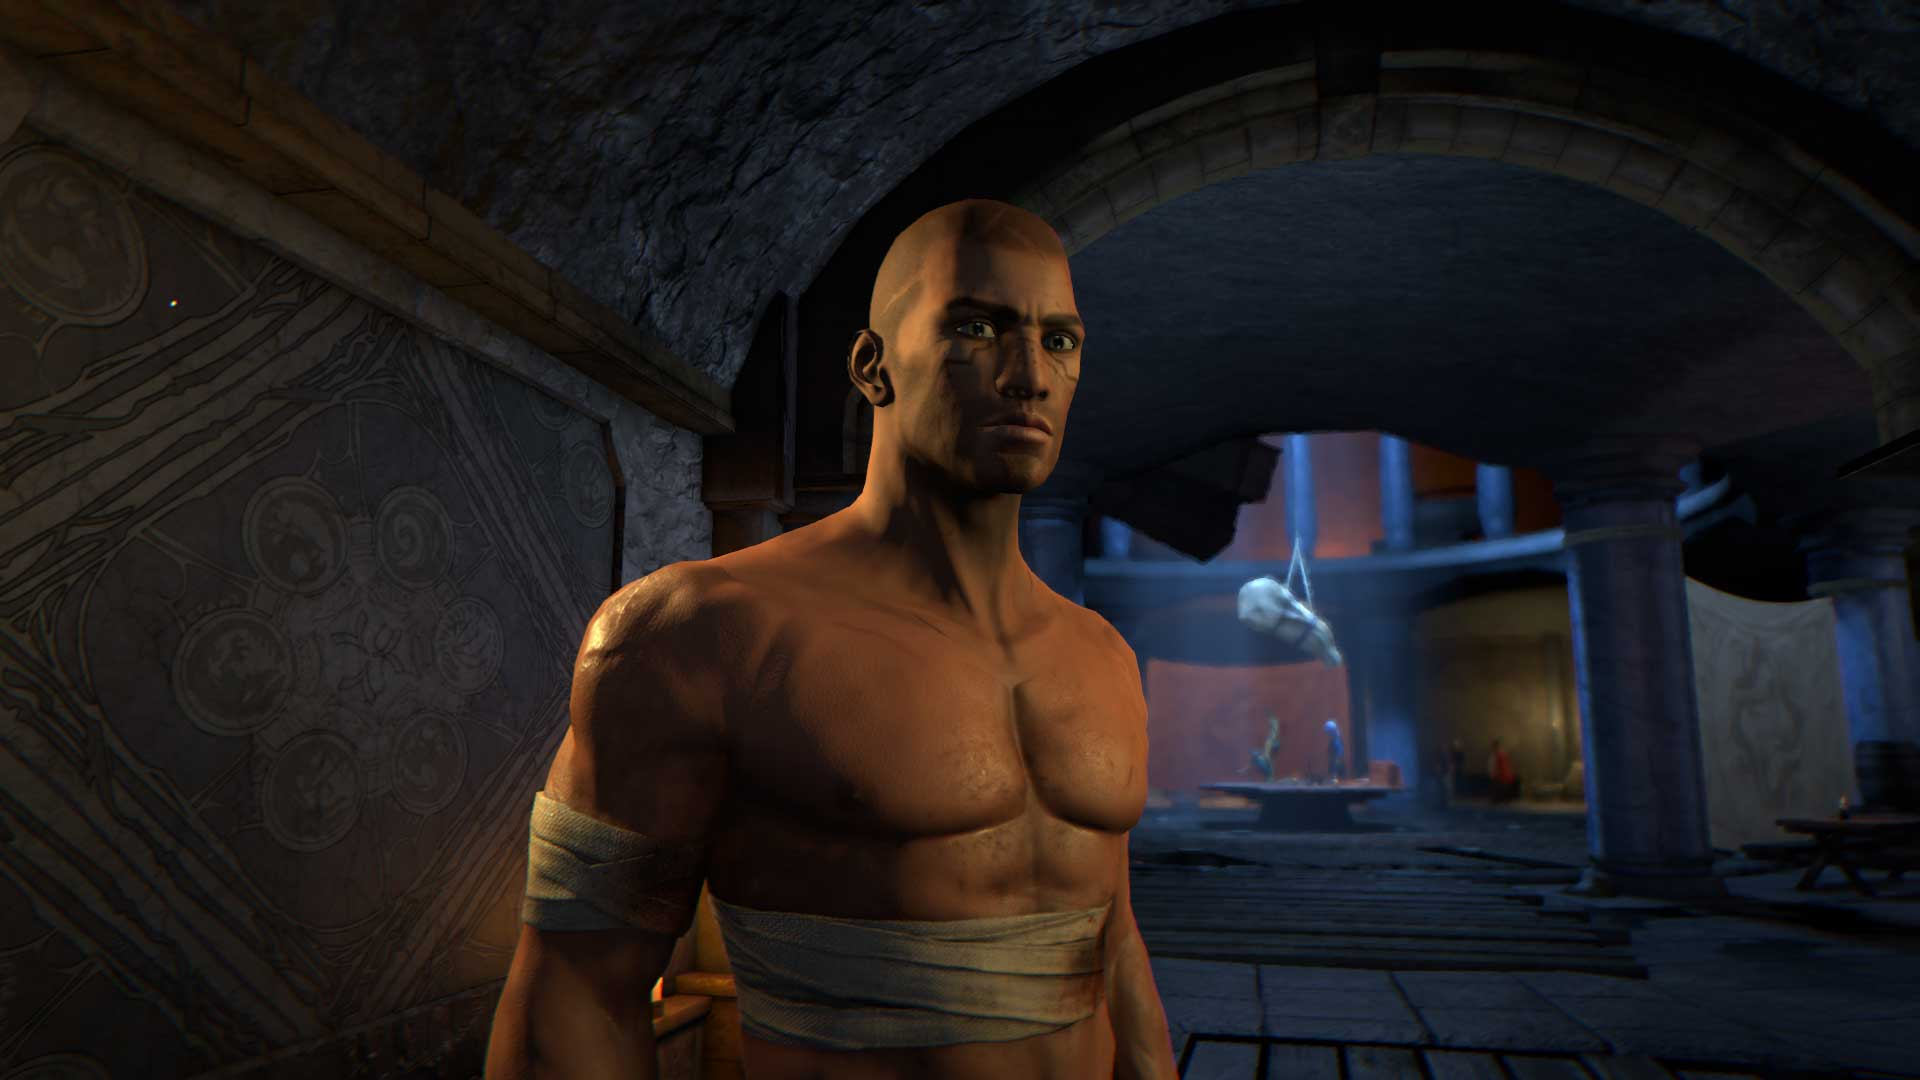 dreamfall_chapters_unity_5_4